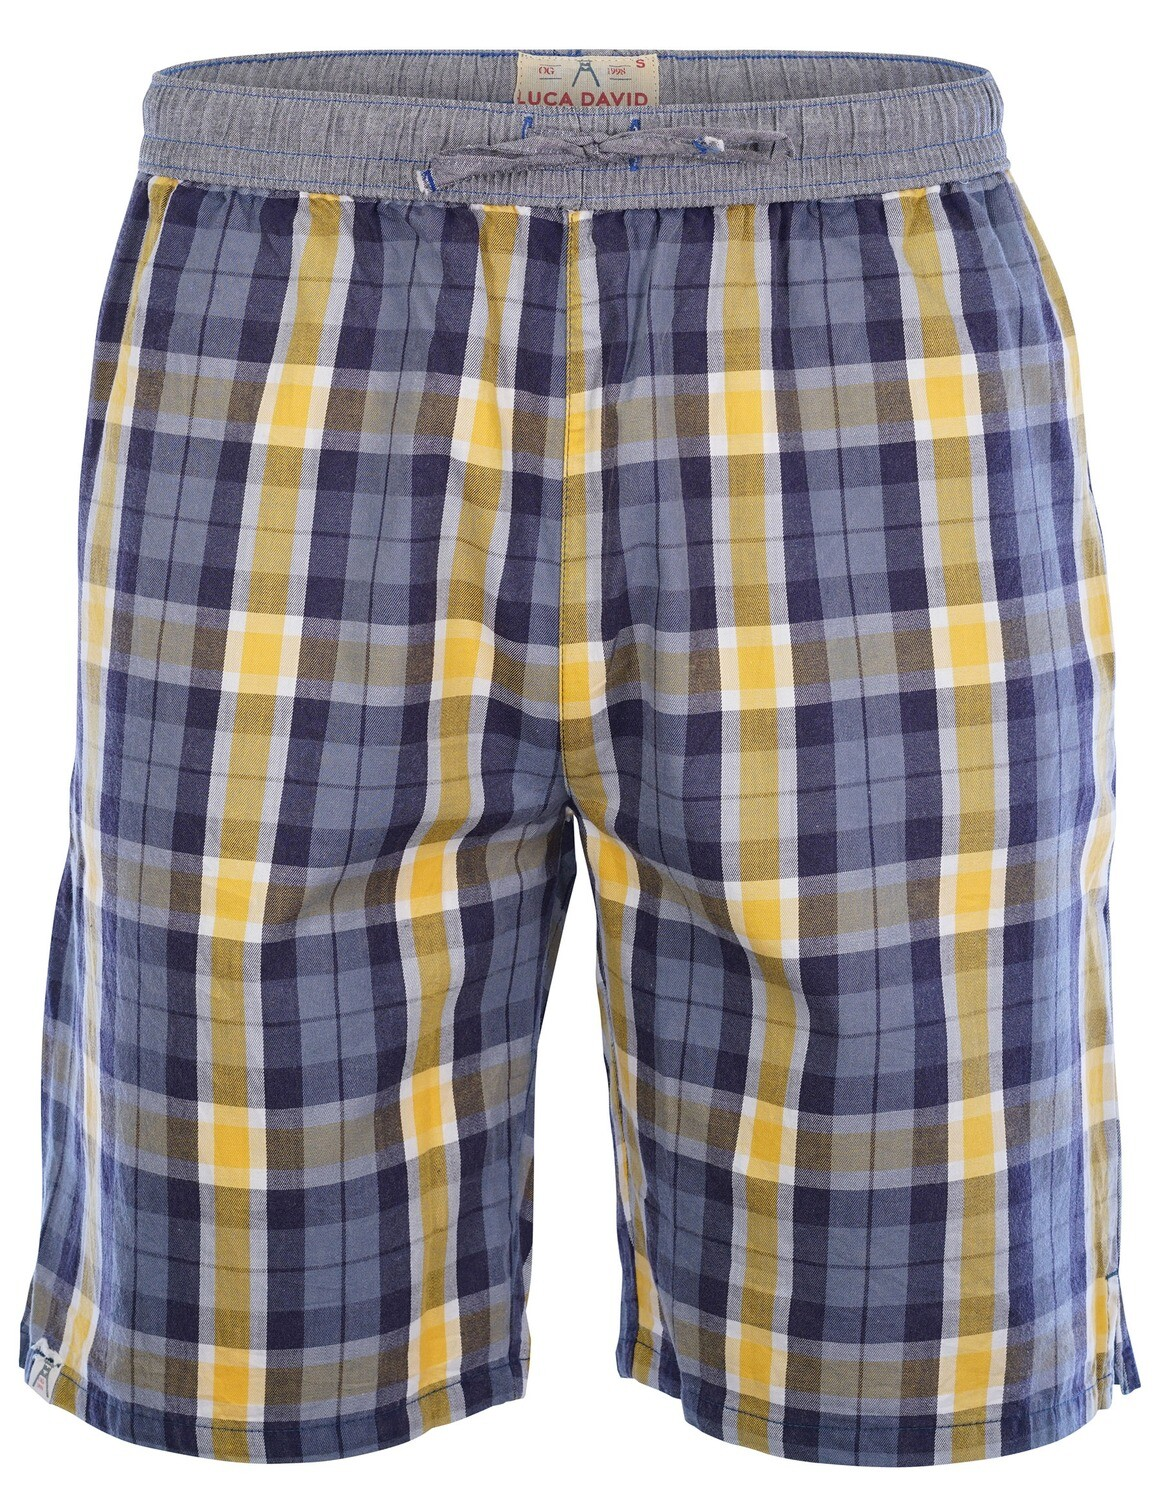 LUCA DAVID Olden Glory Mens Bermuda-Shorts